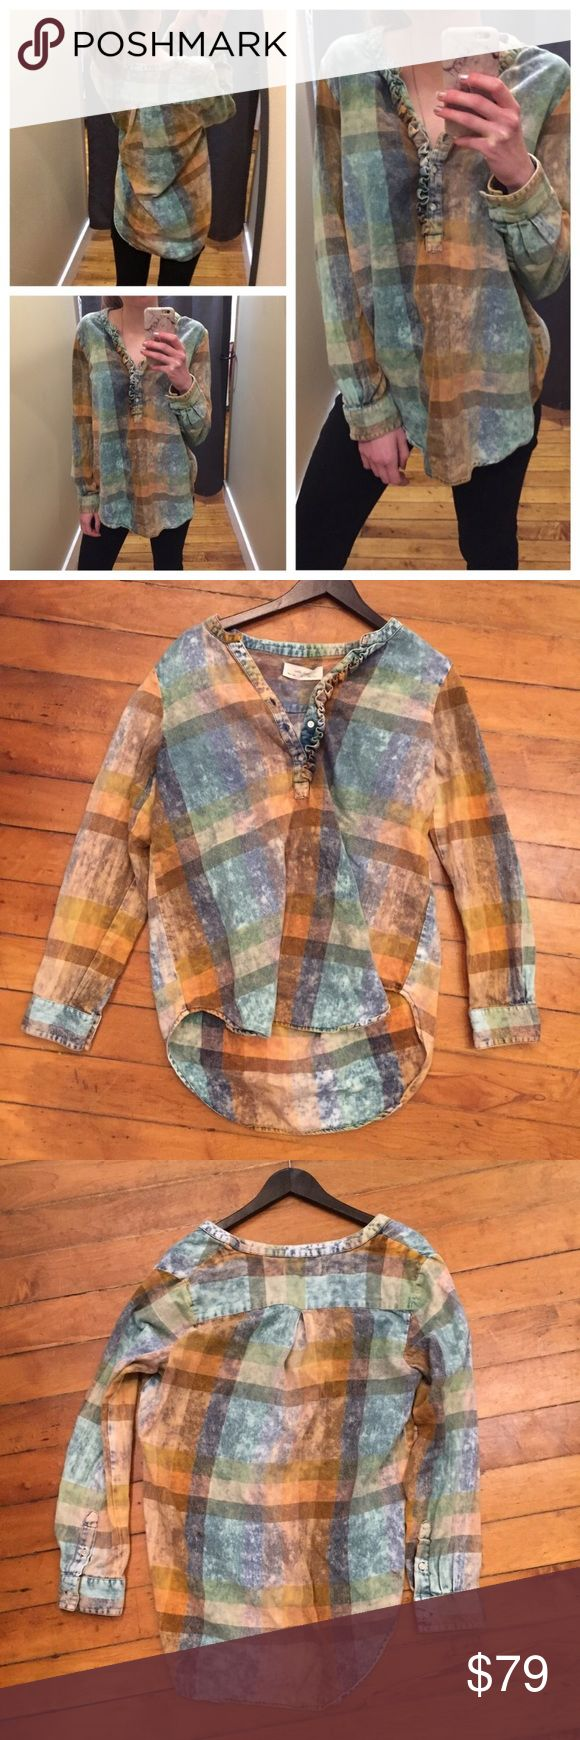 Anthropologie Brand Acid Wash Blue Plaid Tunic Anthropologie Brand called Isabella Sinclair. ⚜️I love receiving offers through the offer button!⚜️ Good condition, as seen in pictures! Fast same or next day shipping!📨 Open to offers but I don't negotiate in the comments so please use the offer button😊 Anthropologie Tops